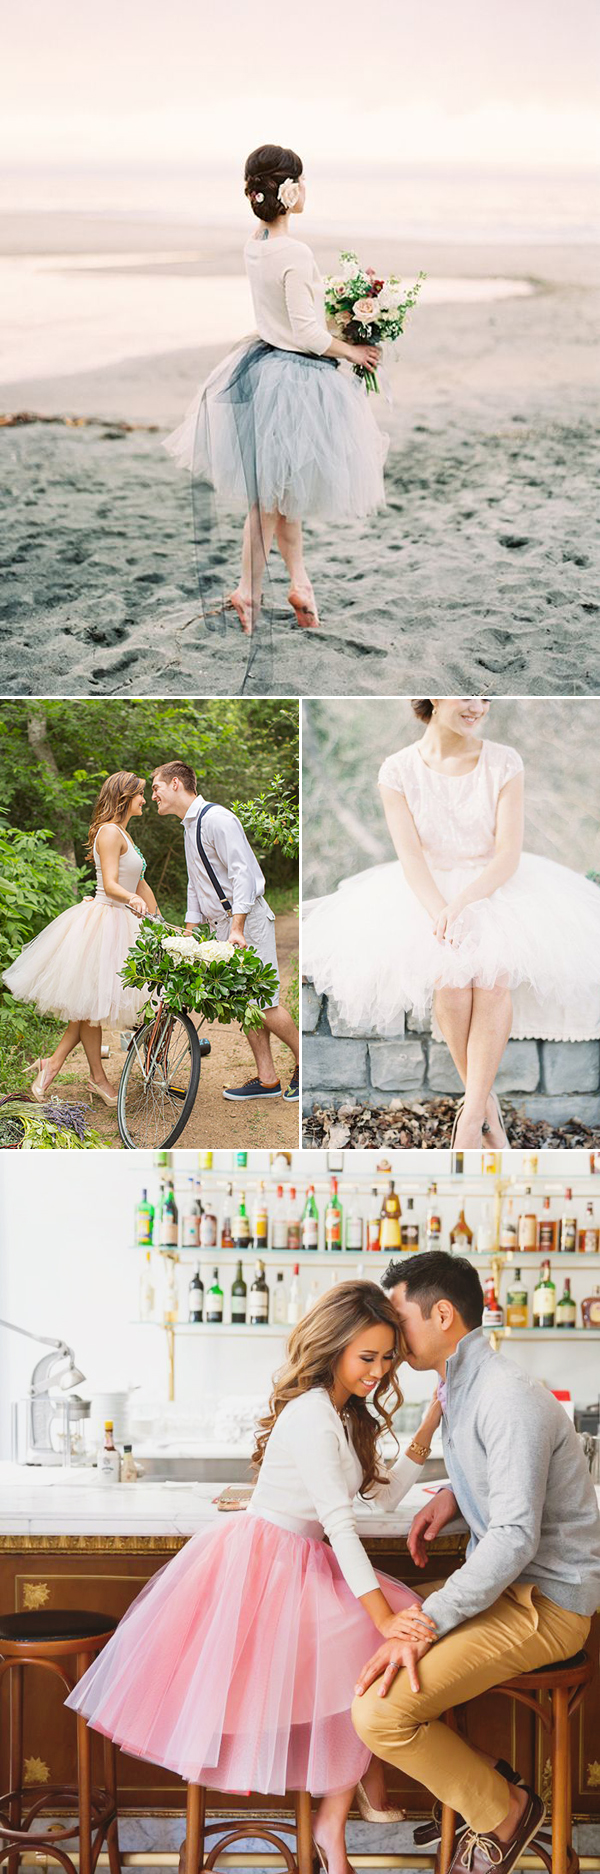 What To Wear For Your Engagement Shoot 30 Stylish Outfit Ideas For Engagement Photos Youll